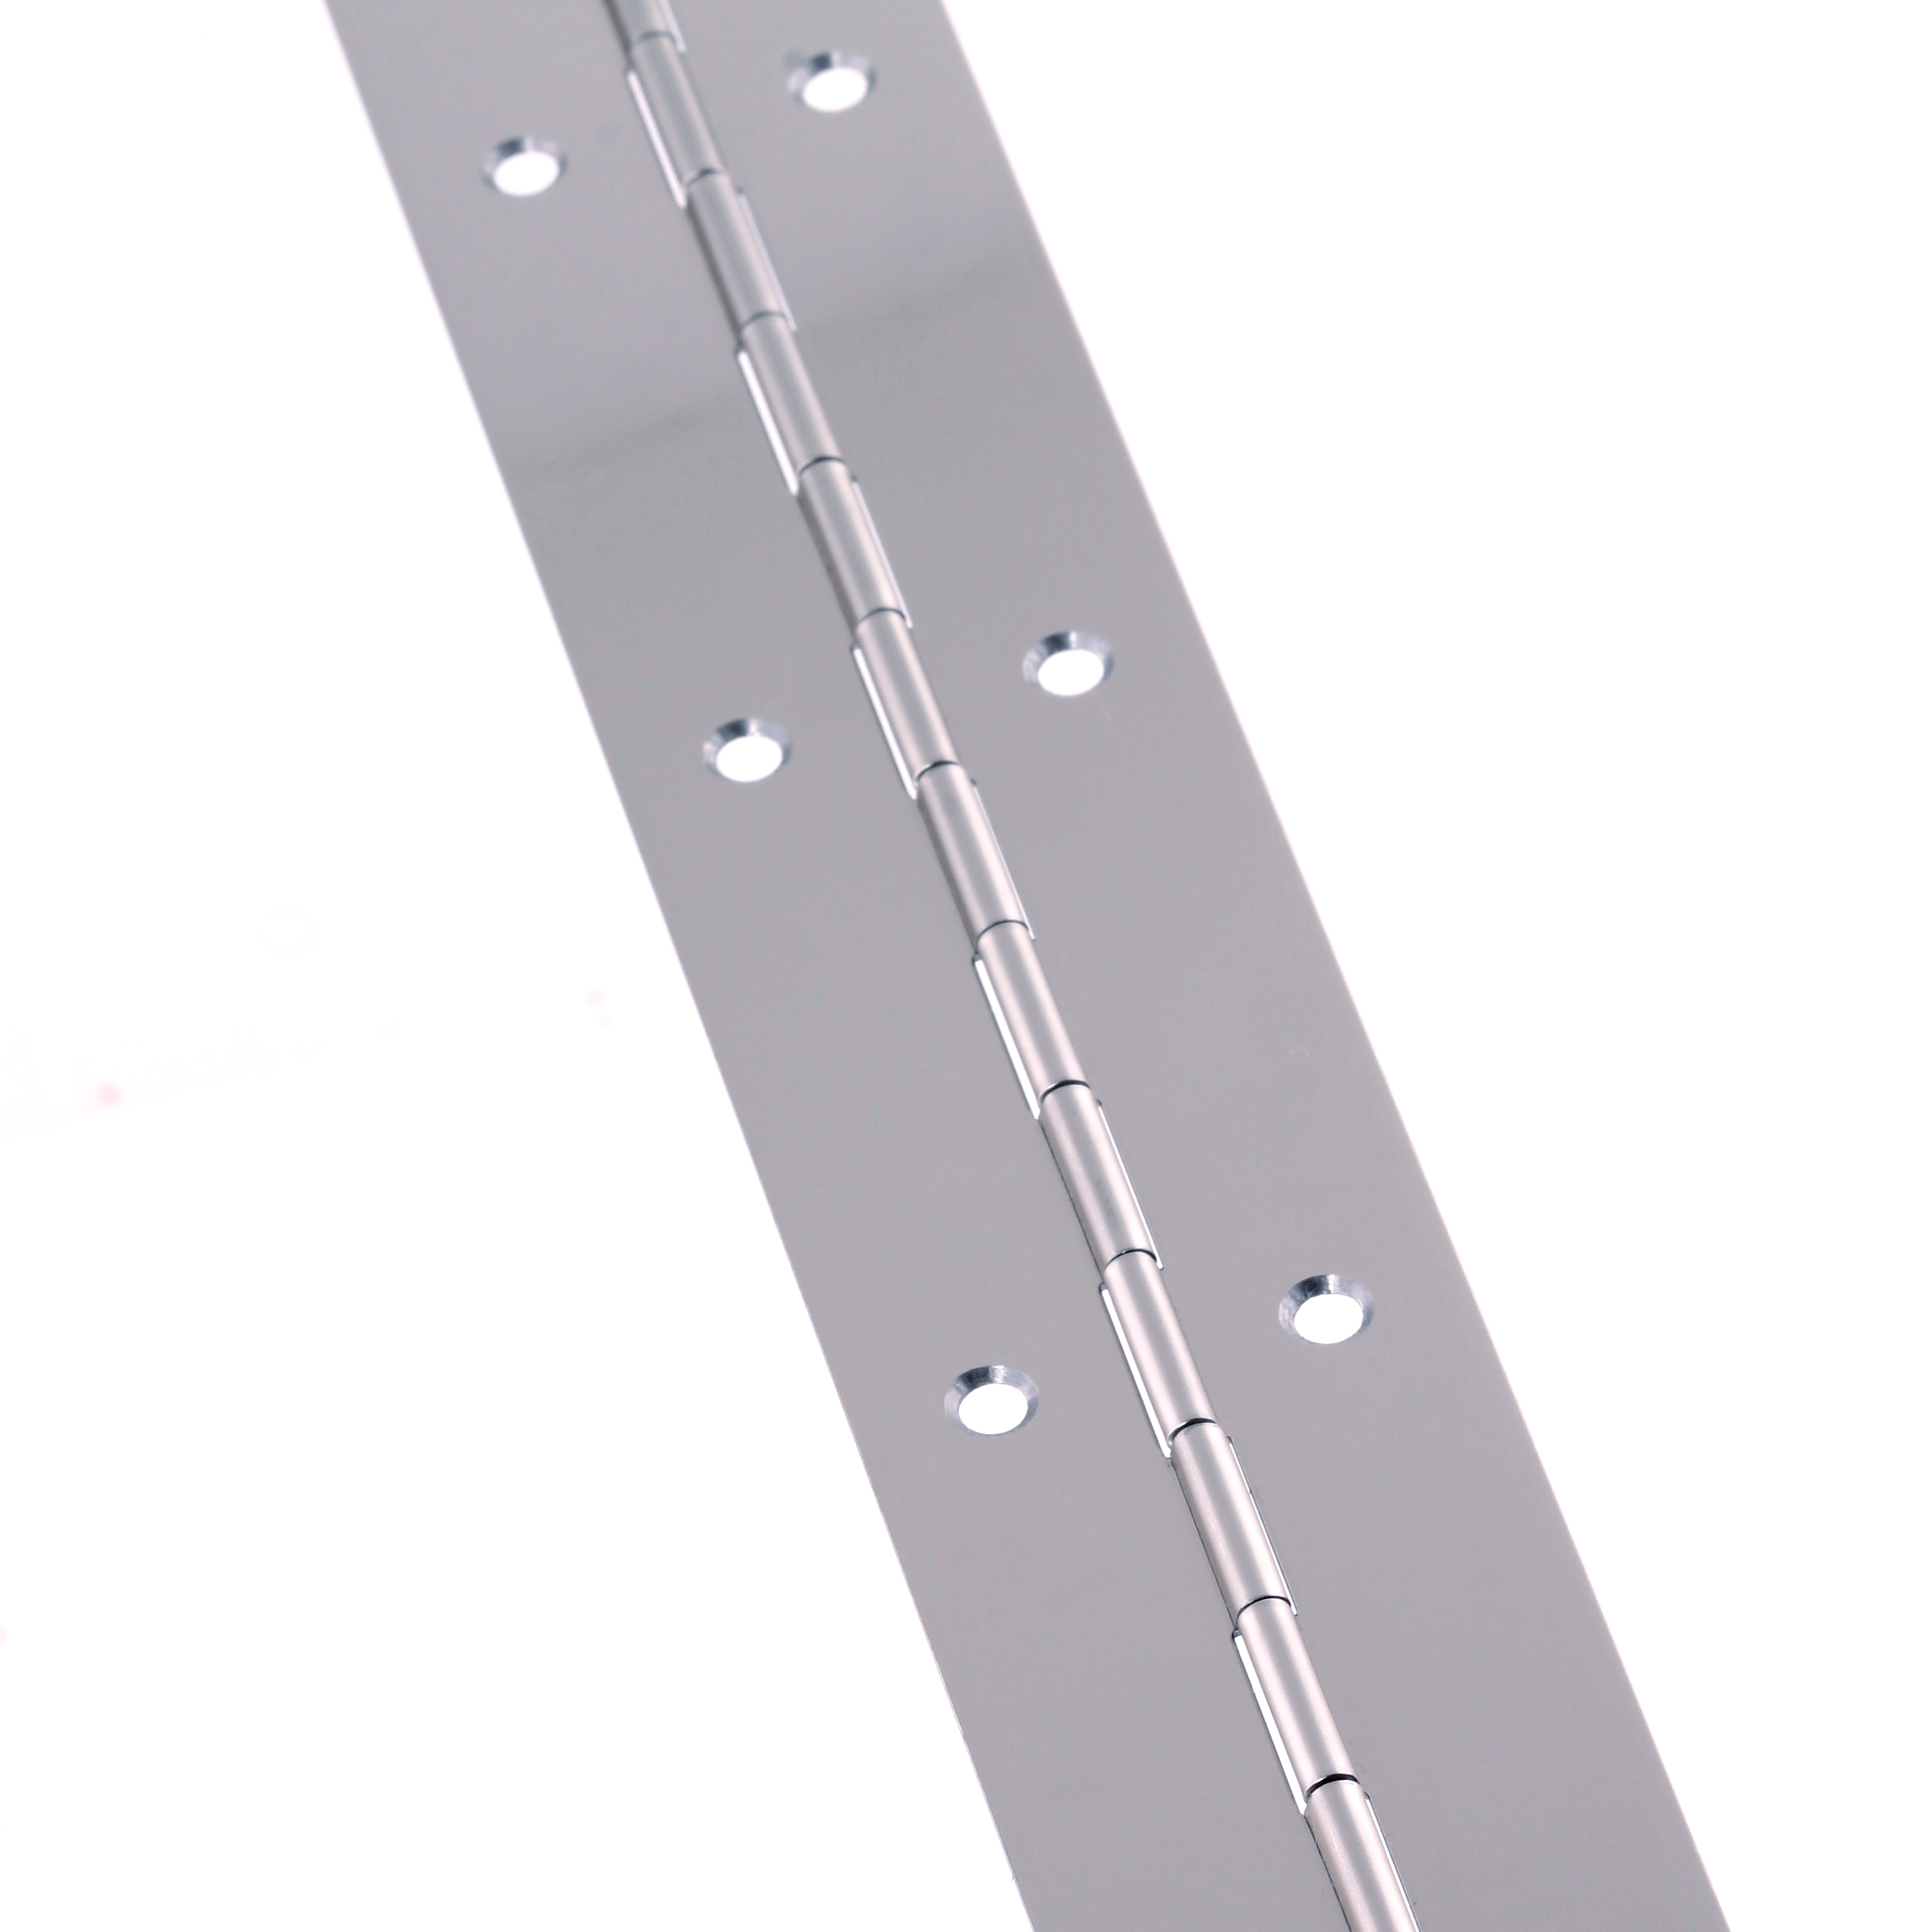 Steel Piano Hinge - 1850 x 38 x 0.7mm - Nickel Plated)